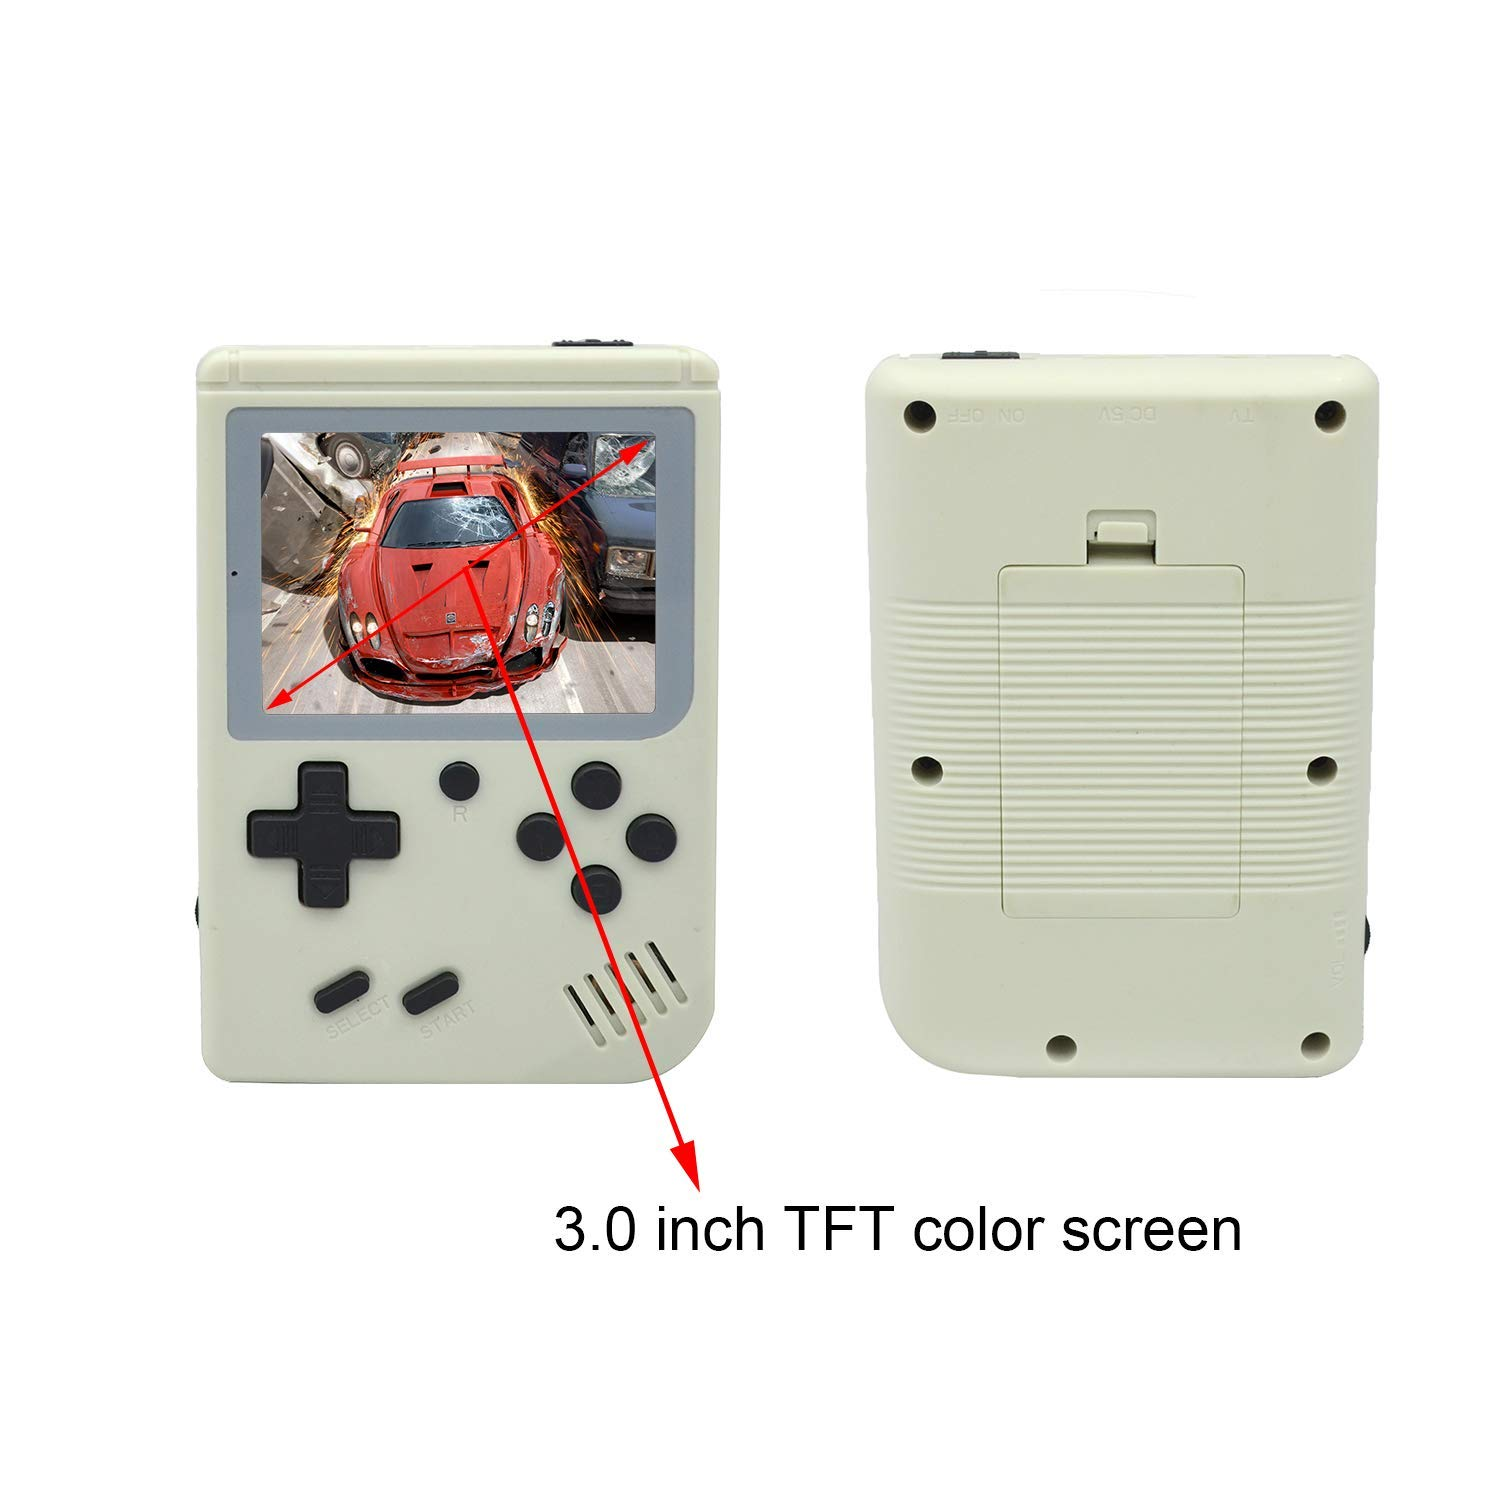 FLYFISH Handheld Game Console, Retro FC Game Console 3 Inch 168 Classic Games , Birthday Present for Children -White by FLYFISH (Image #3)